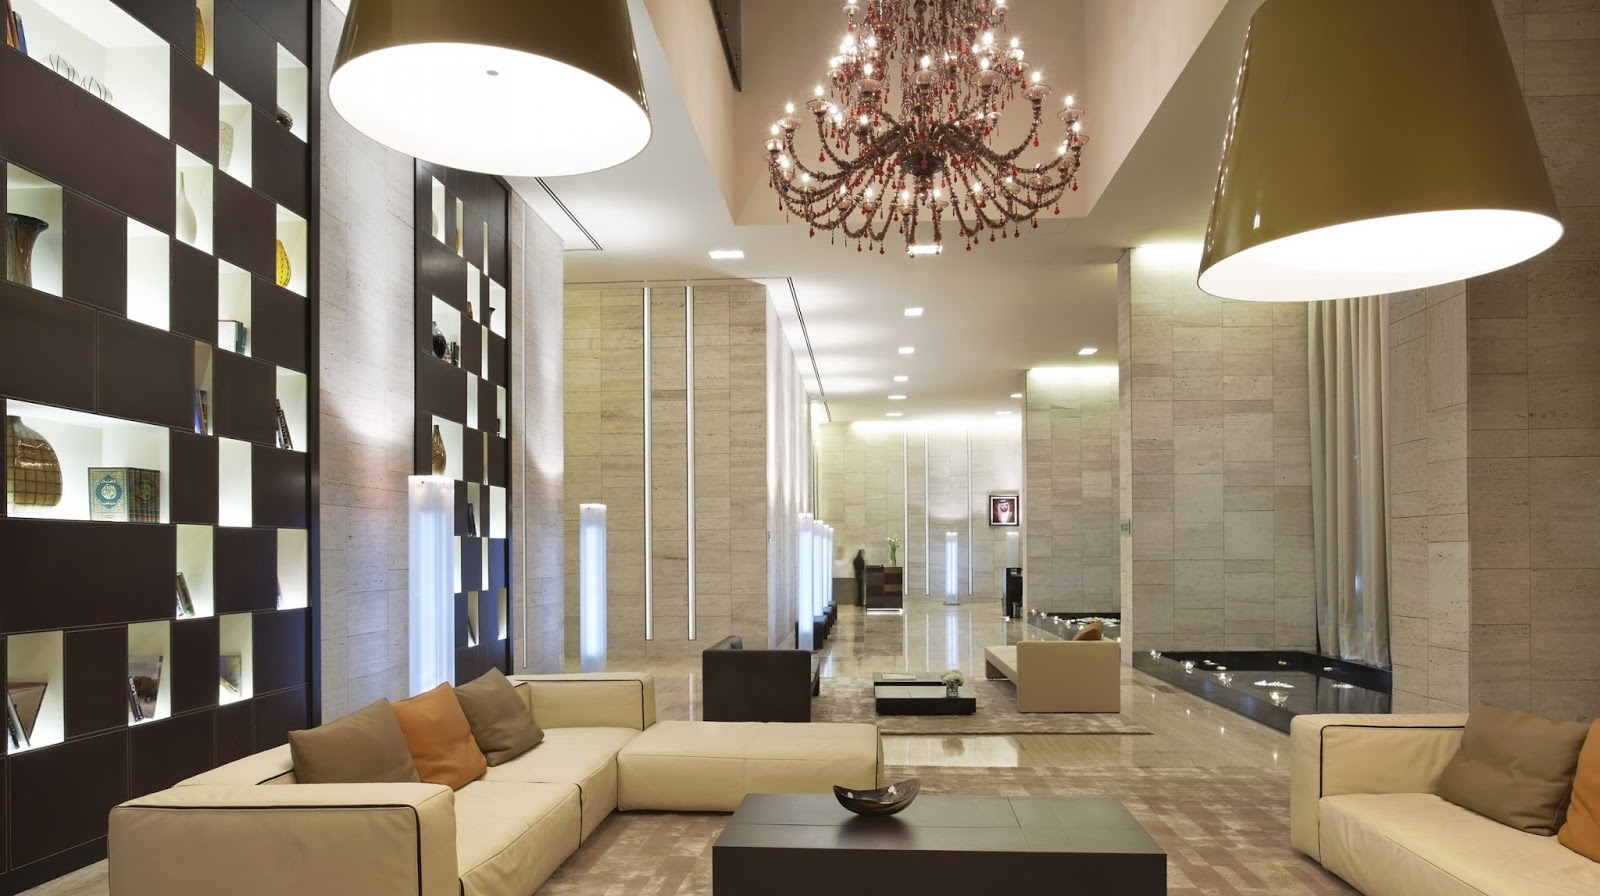 Best interior design companies and interior designers in dubai for Interieur design